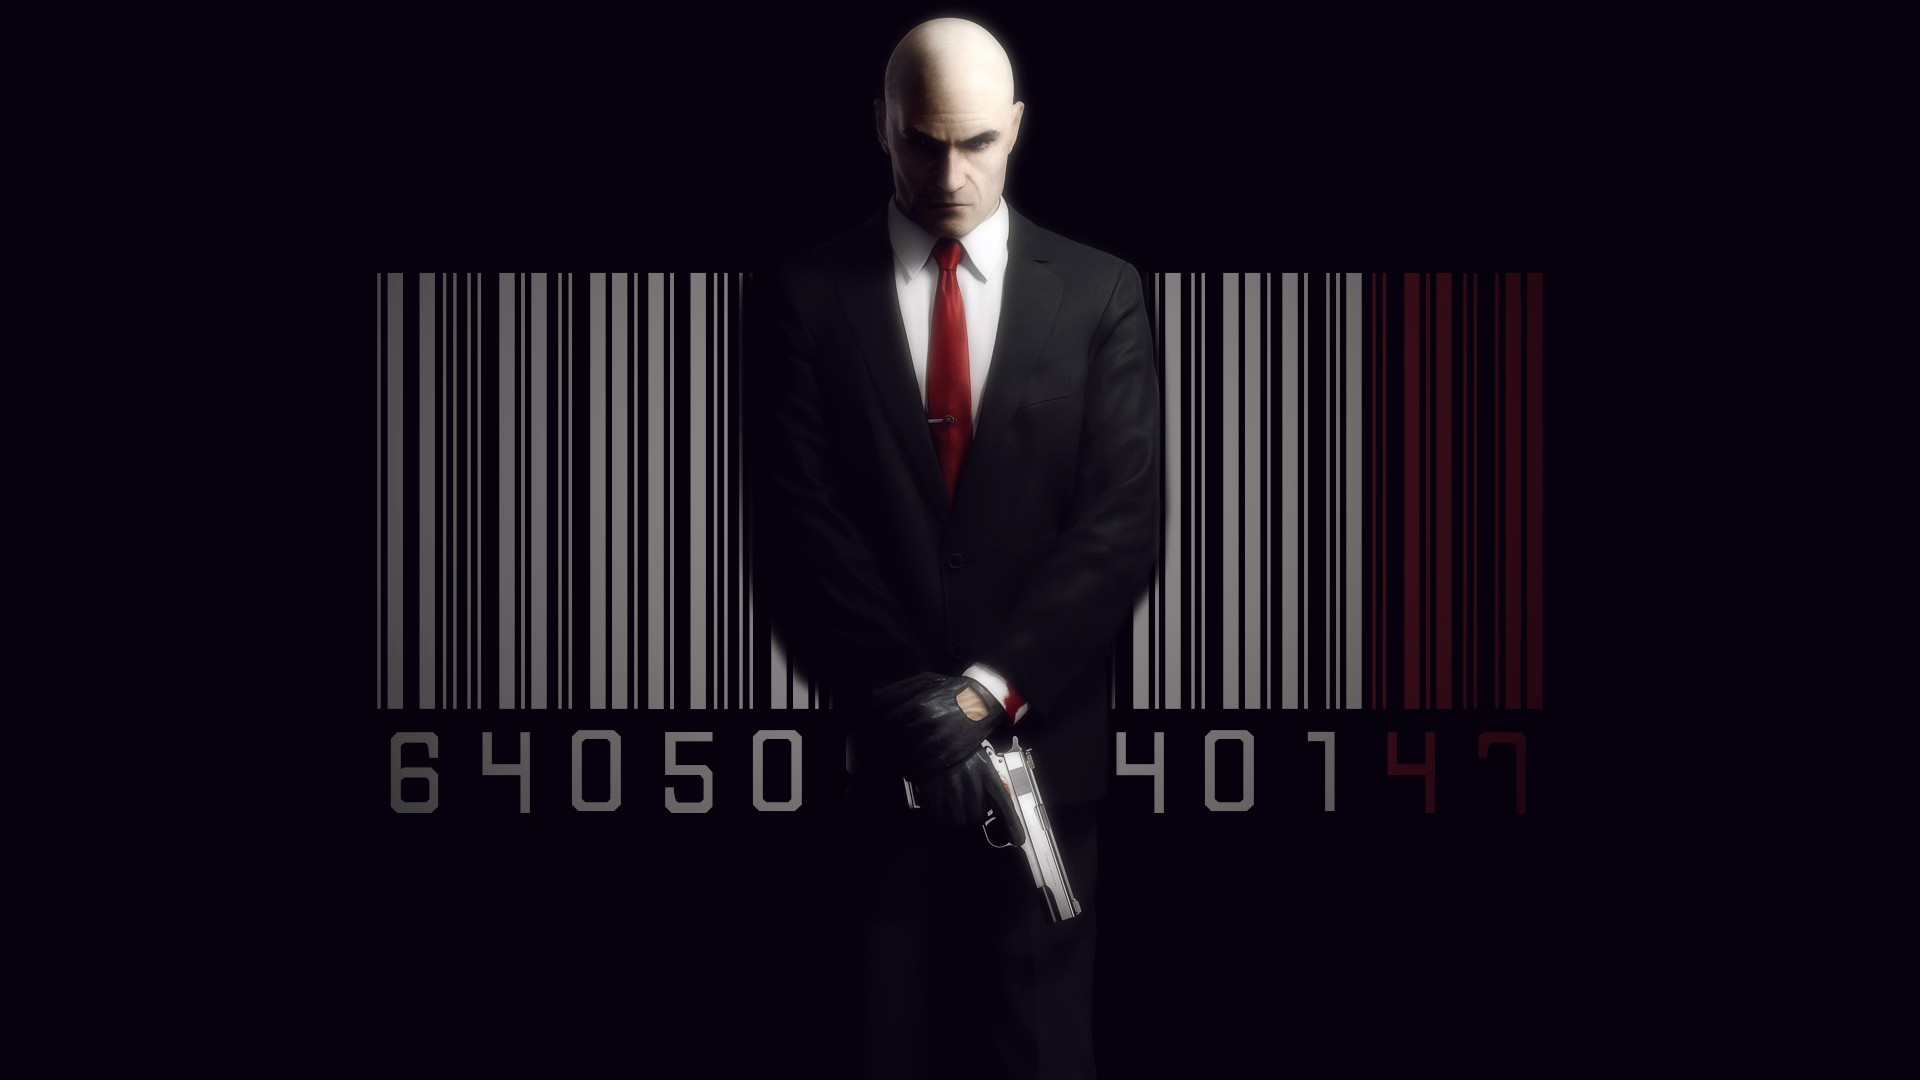 Hitman hd wallpaper background image 1920x1080 id 309591 wallpaper abyss - Agent 47 wallpaper ...